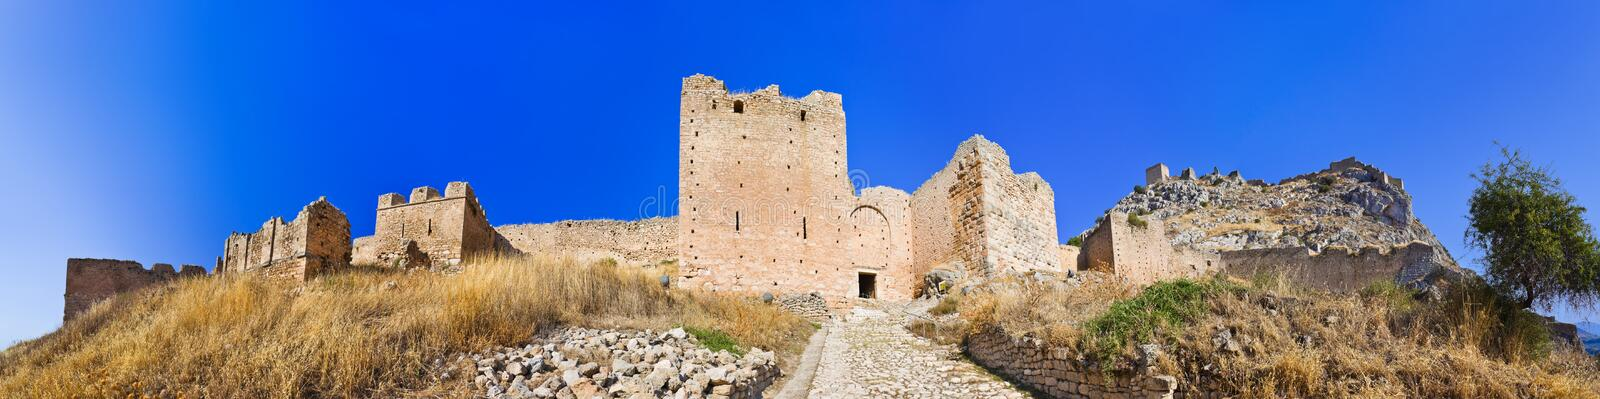 Download Old Fort In Corinth, Greece Stock Photo - Image: 30114274